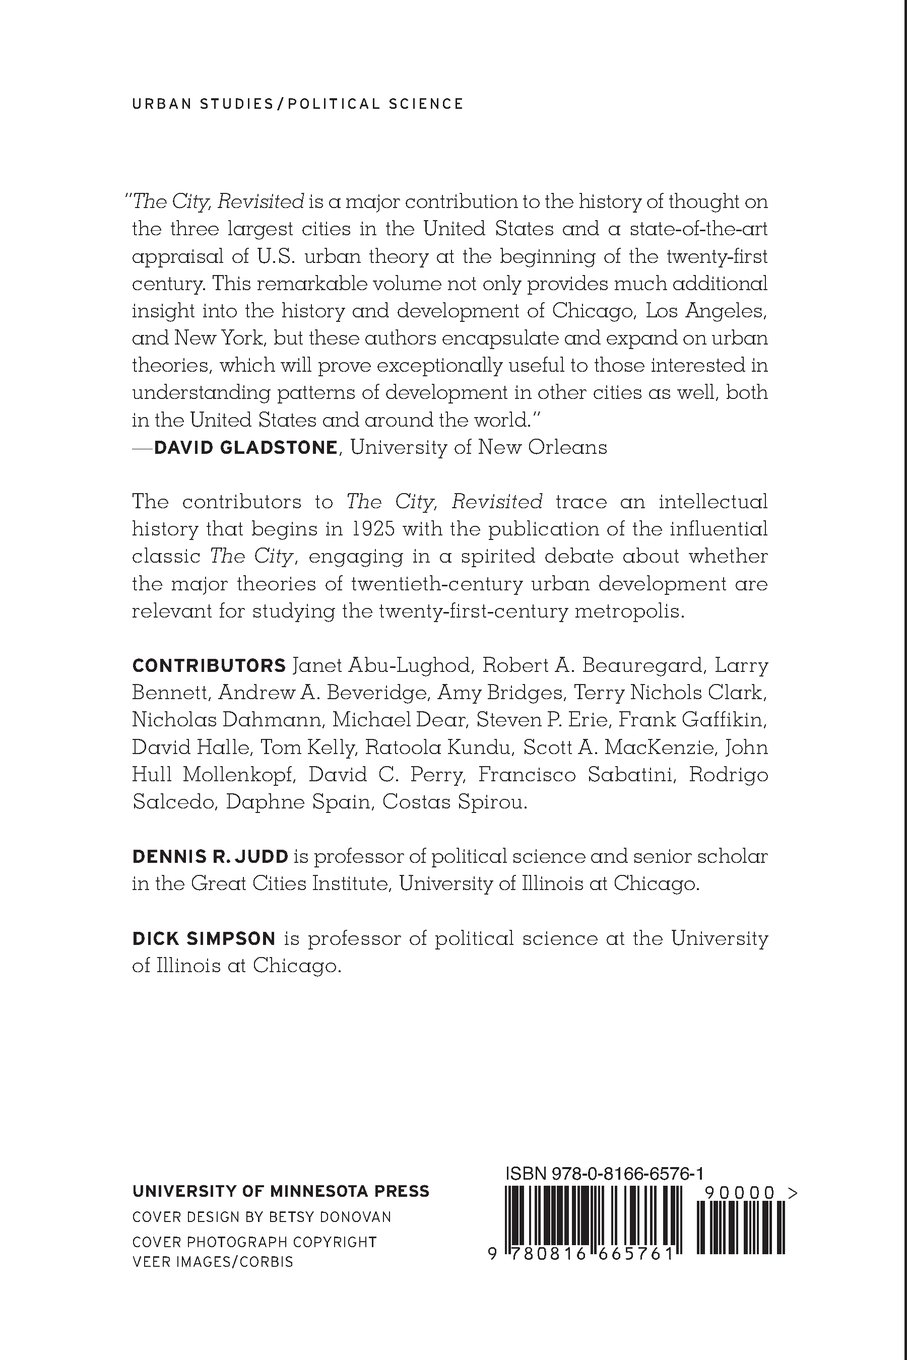 the city re ed urban theory from chicago los angeles and the city re ed urban theory from chicago los angeles and new york dennis r judd dick simpson janet l abu lughod robert a beauregard